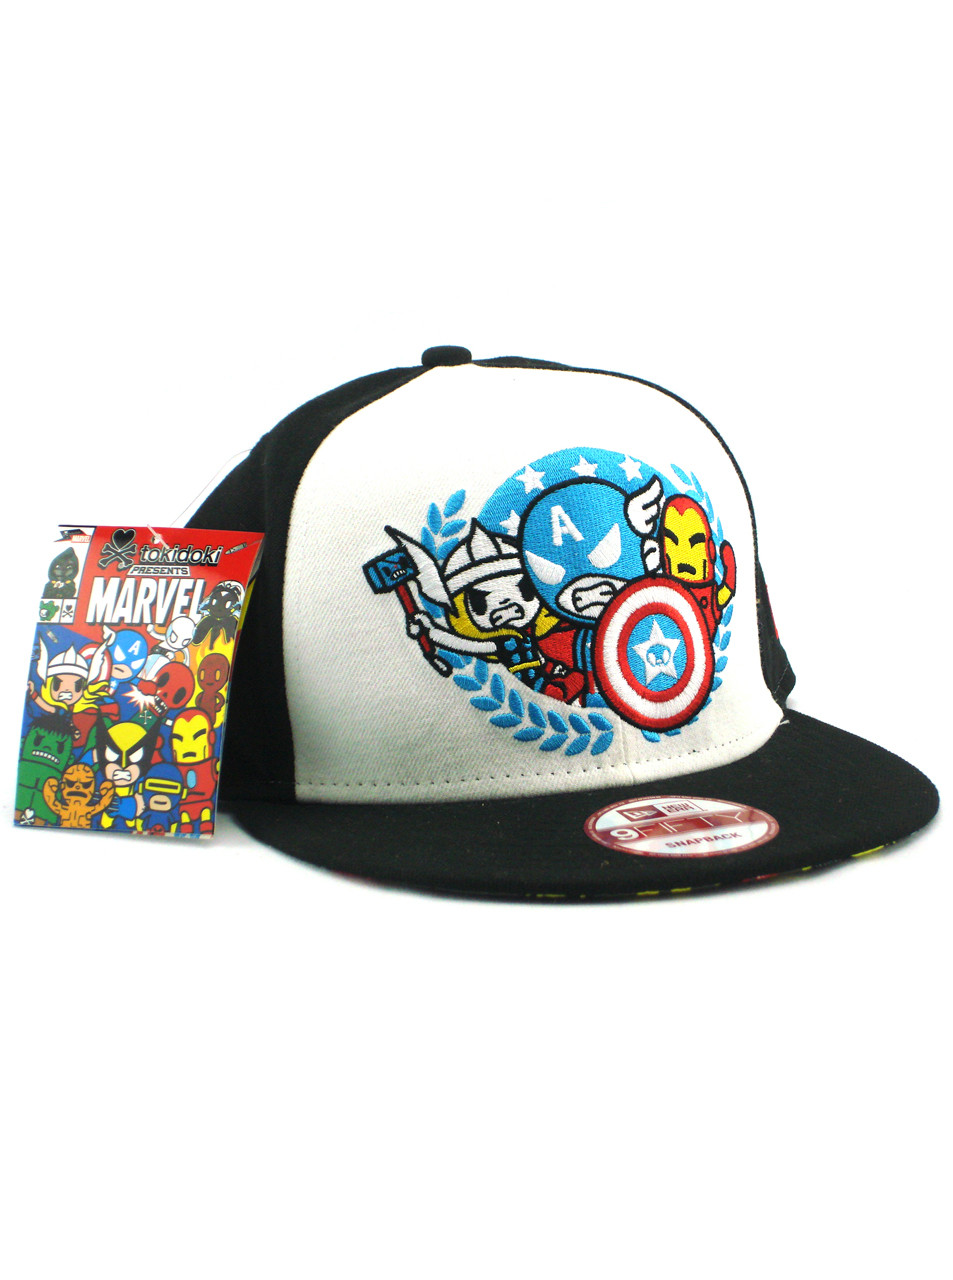 c2bad9d03d7 New Era Tokidoki Avengers Team Seal 9fifty Snapback Hat View 1